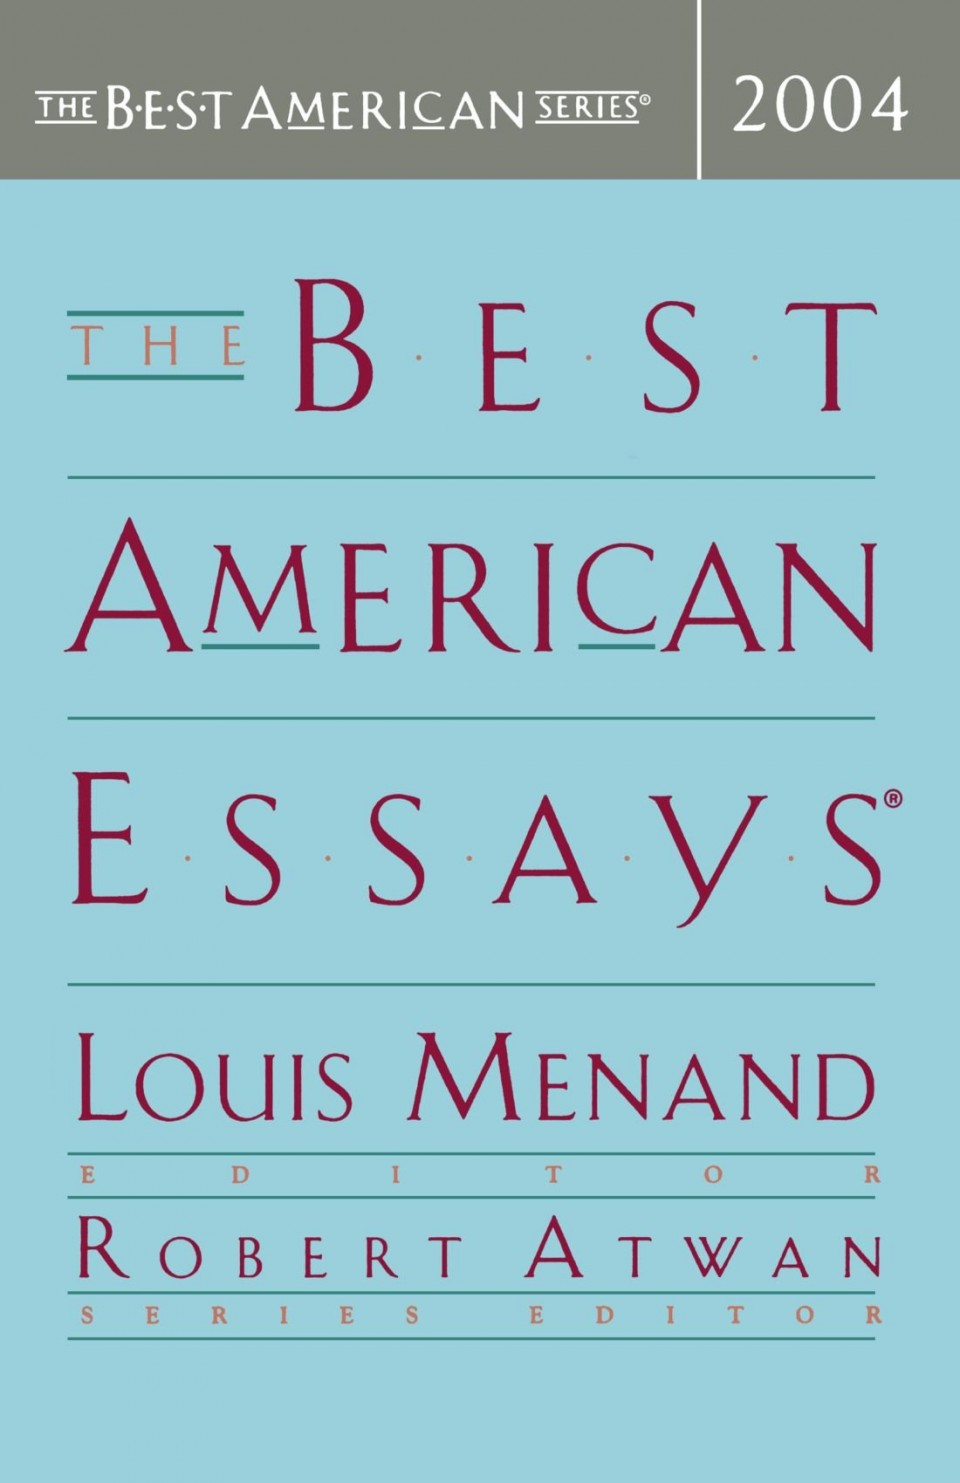 015 Essay Example The Best American Essays Wonderful 2013 Pdf Download Of Century Sparknotes 2017 960